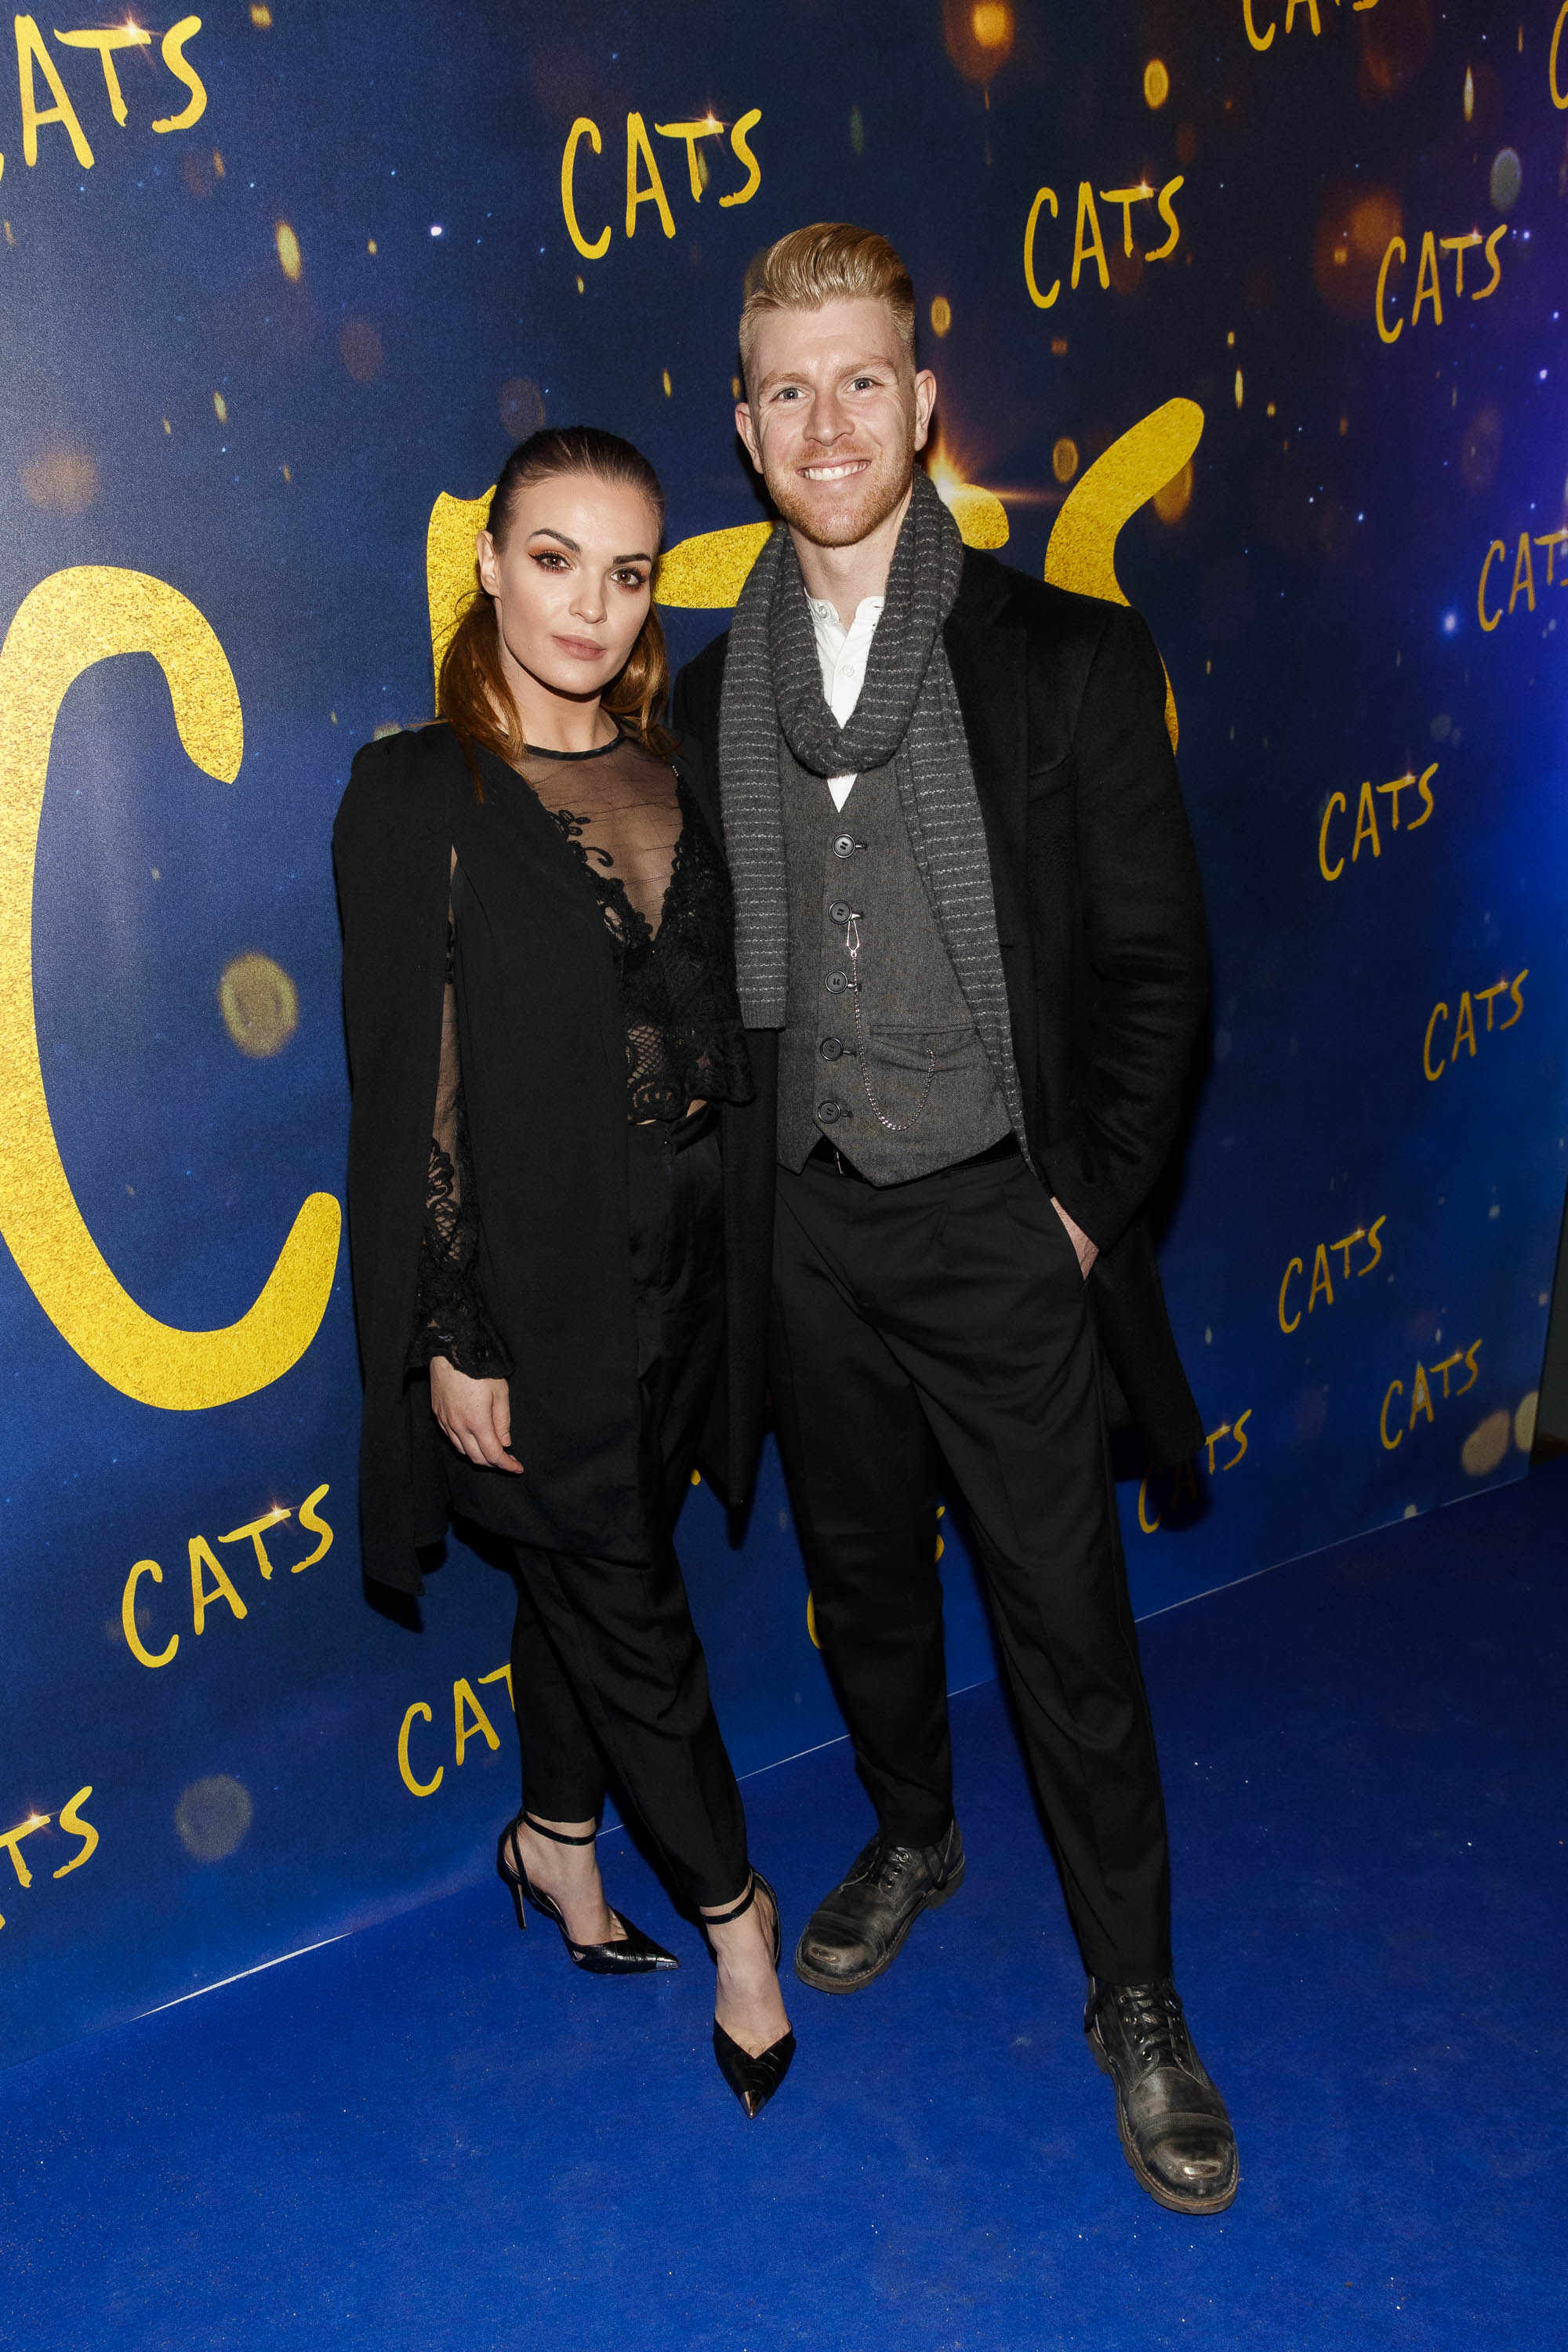 Kylee and Stephen Vincent pictured at the Irish premiere screening of 'Cats' at The Stella Theatre, Rathmines. Picture: Andres Poveda